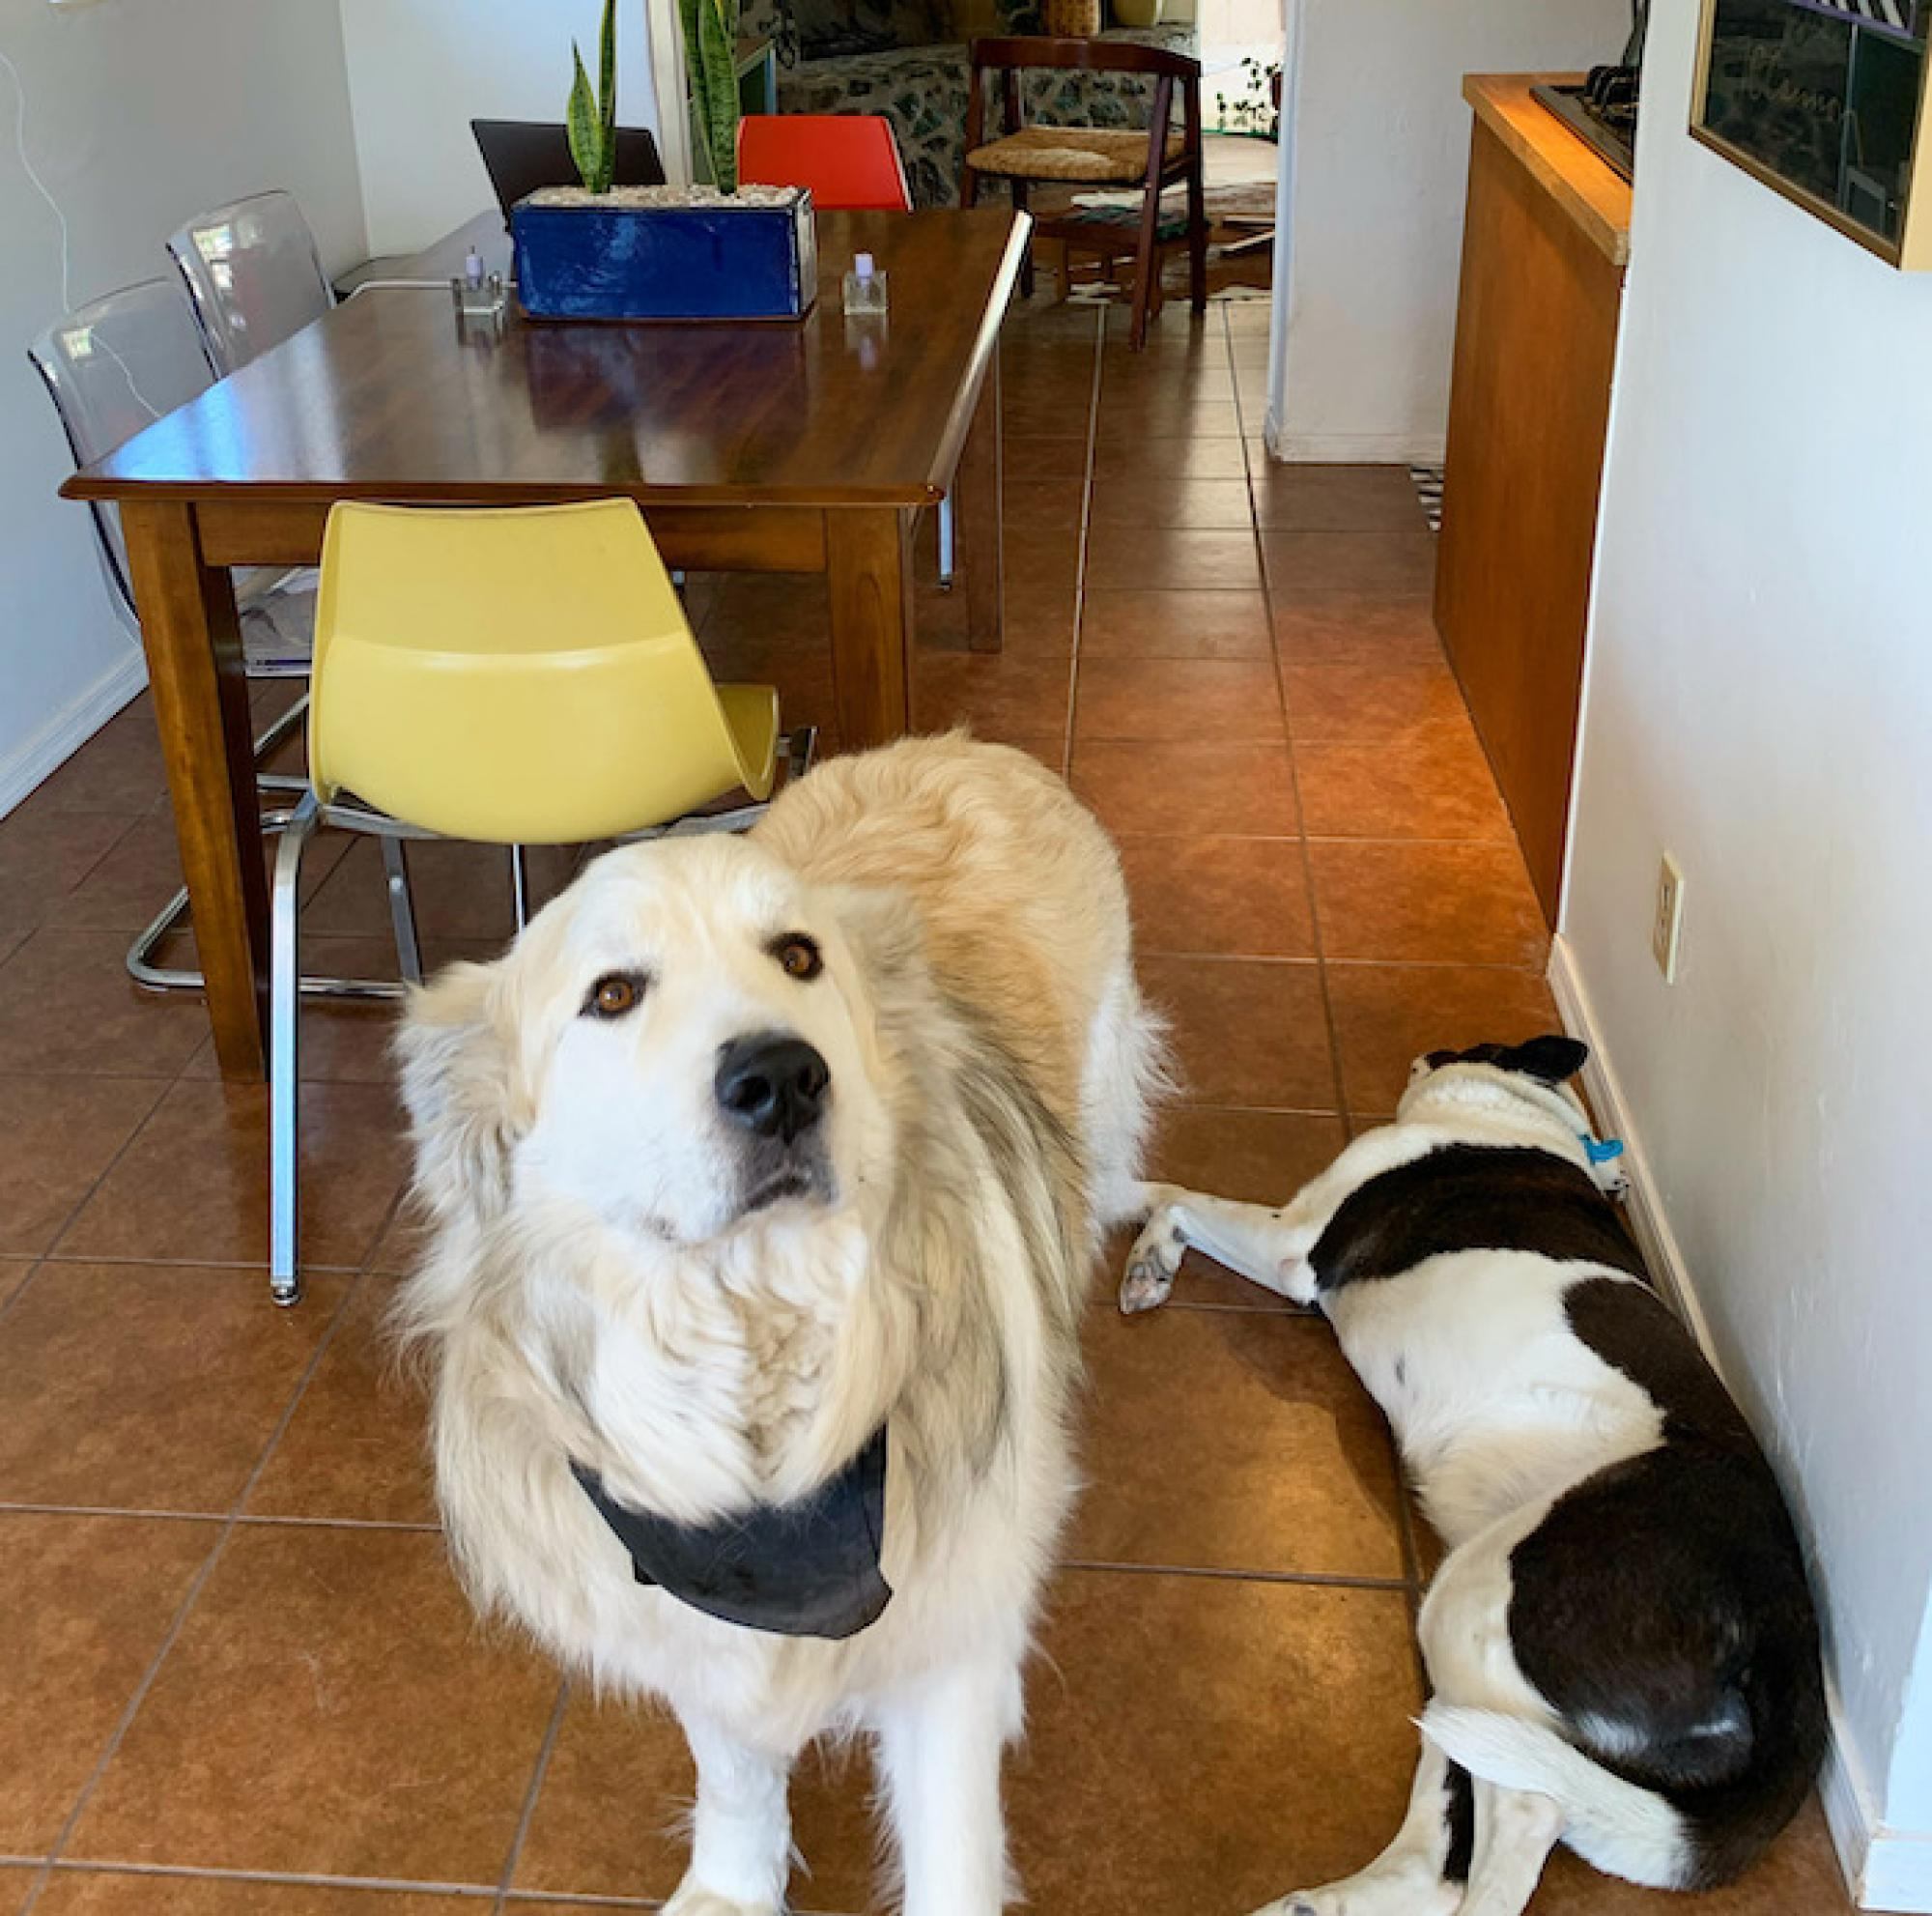 I have three dogs of my own, and am dog-sitting for my colleague, Colleen Loomis. I'm running a 1,350-square-foot petting zoo, essentially. My dog, West, is laying down. He's pretty aloof. Colleen's dog, the Colonel , likes keeping me company – and it's a